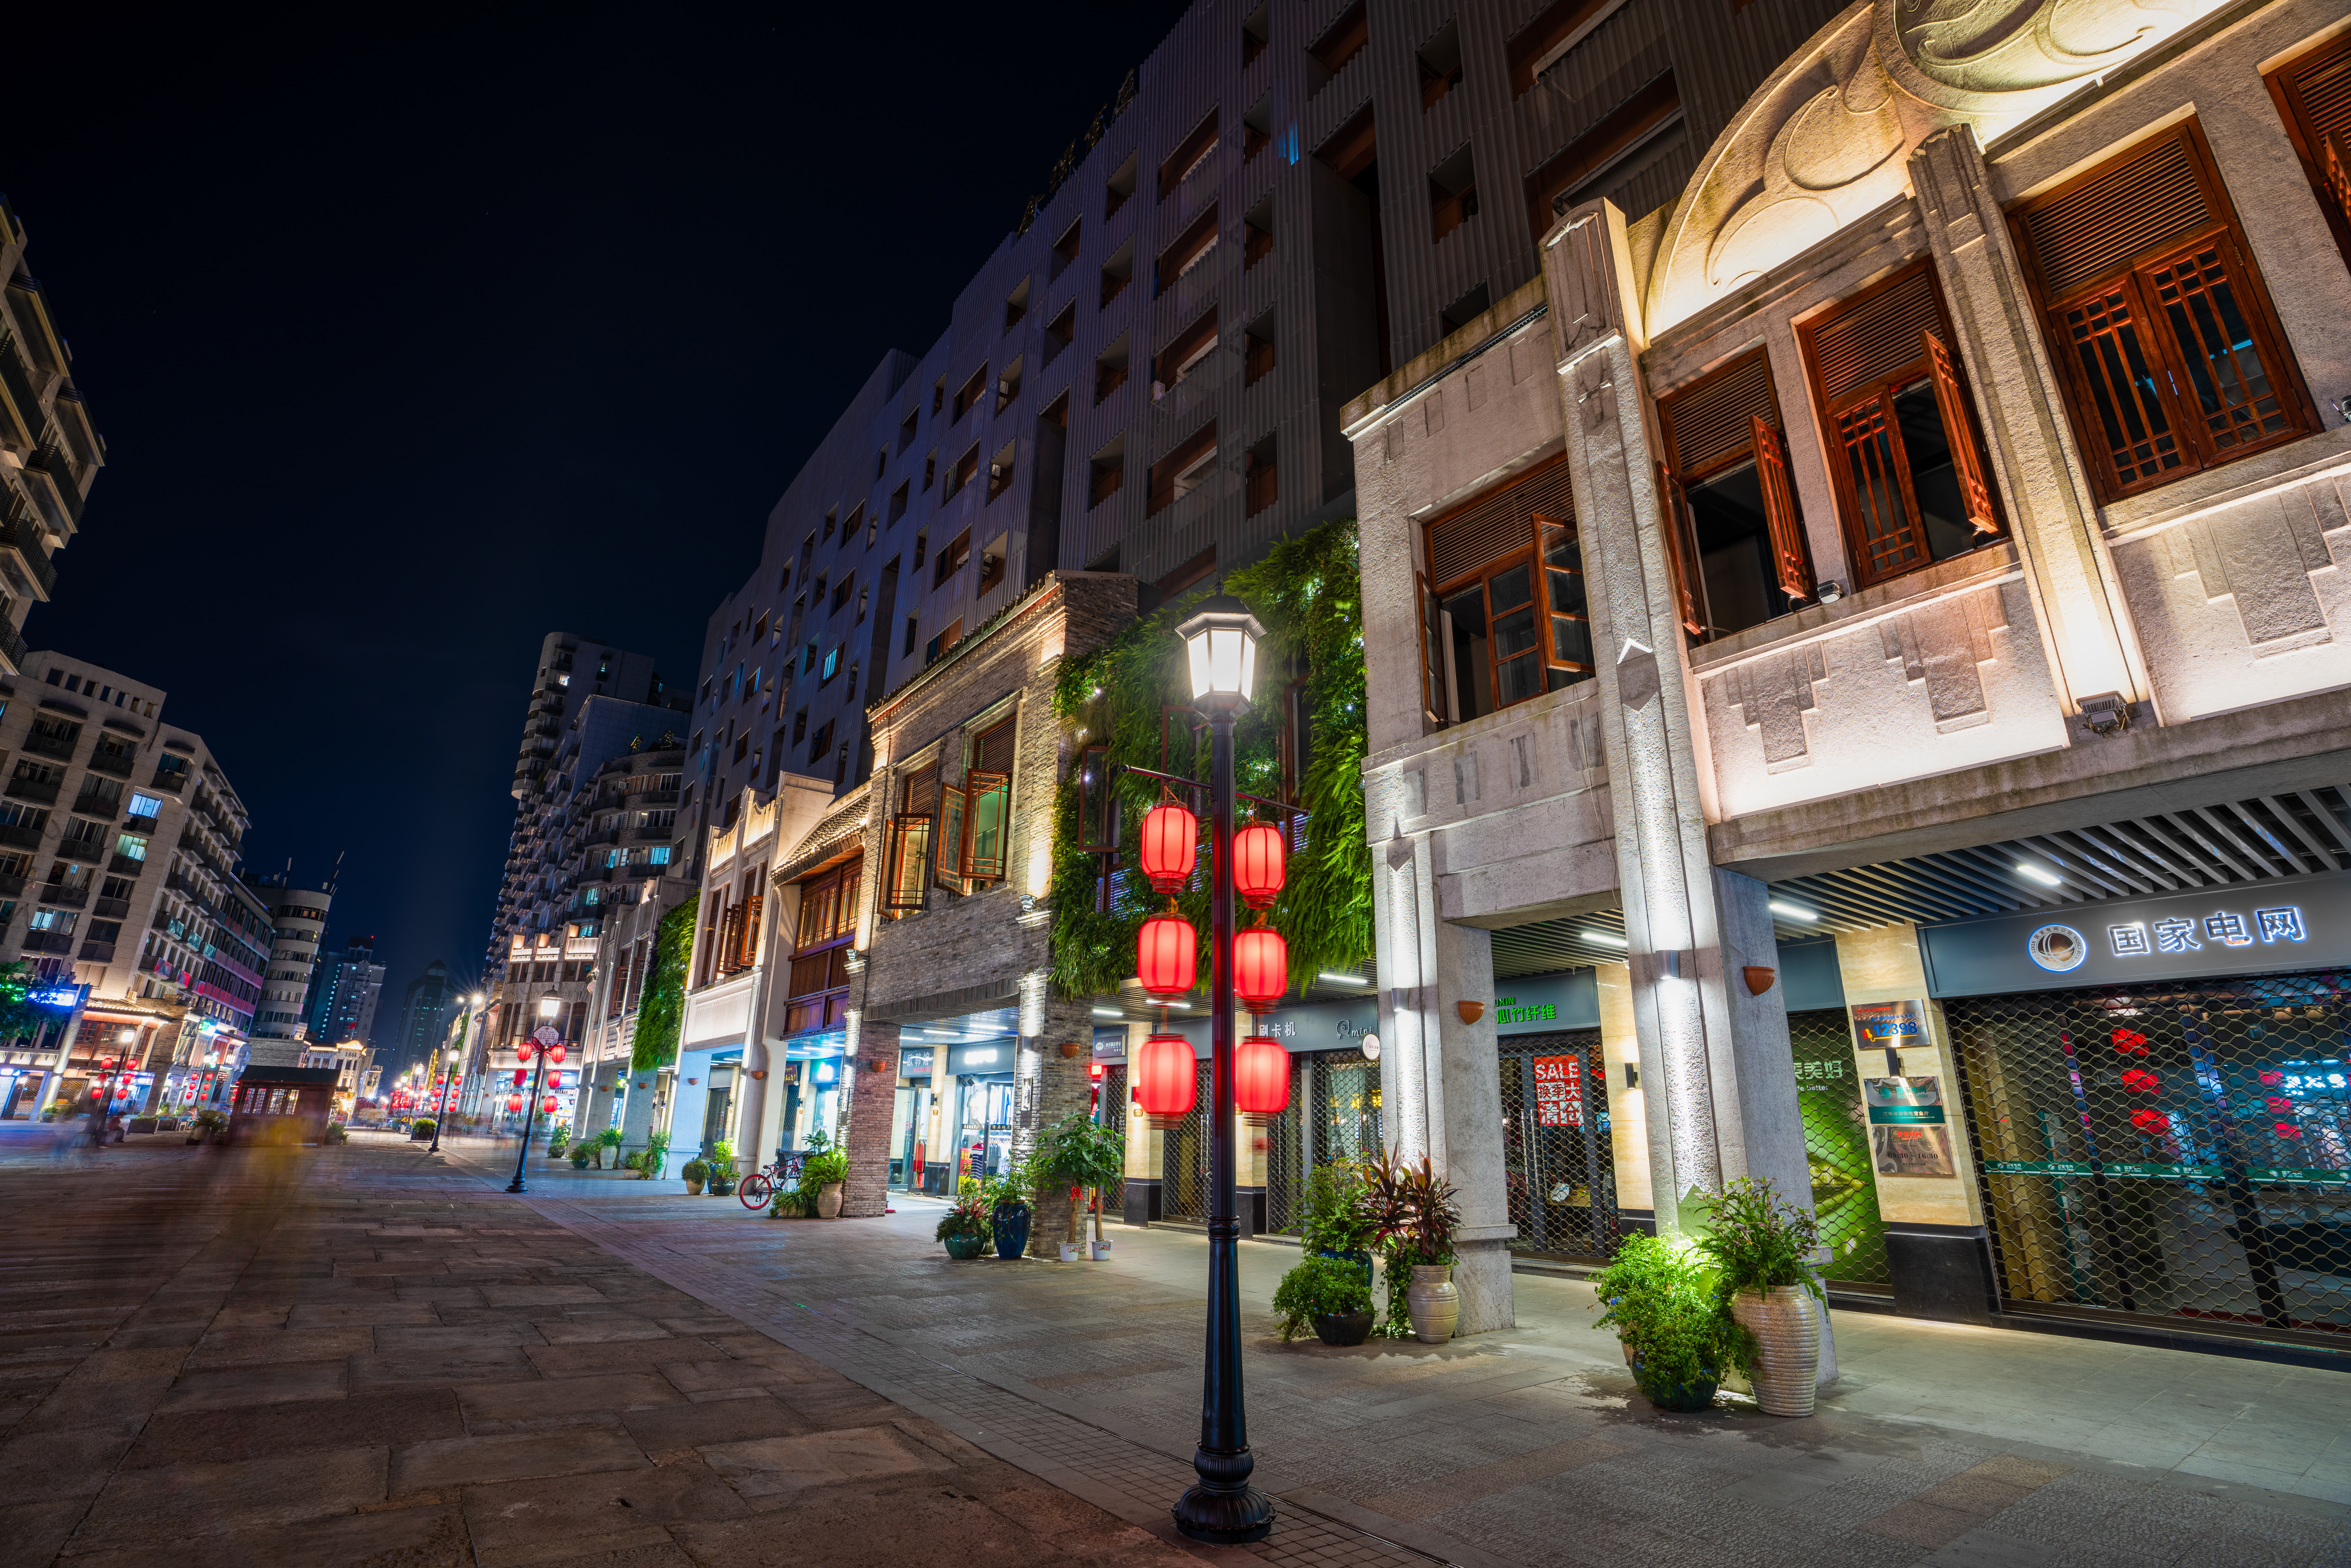 Zen Street after major renovations. Professor Xu says urban public spaces need to play a more important role when planning a city's future.